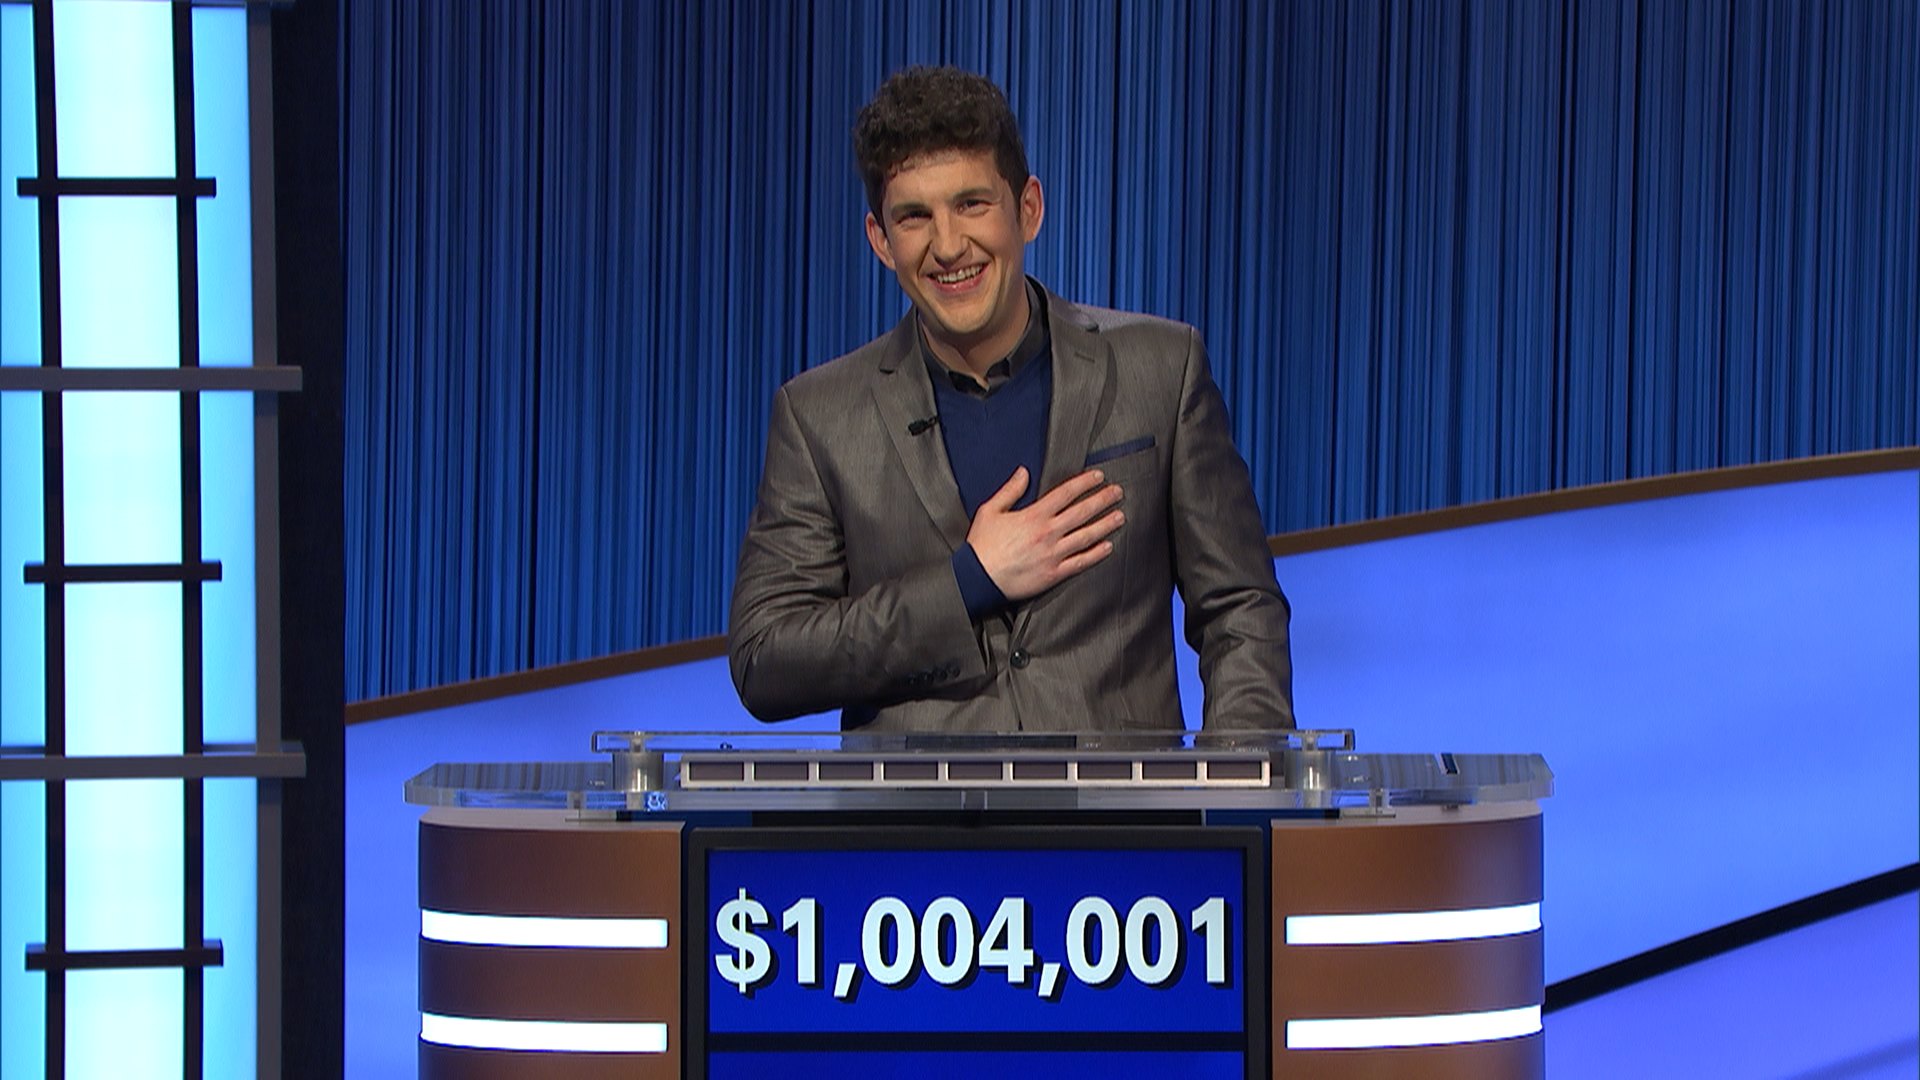 """Jeopardy!"""" contestant Matt Amodio has become the third player in the show's history to win $1 million during regular season play."""